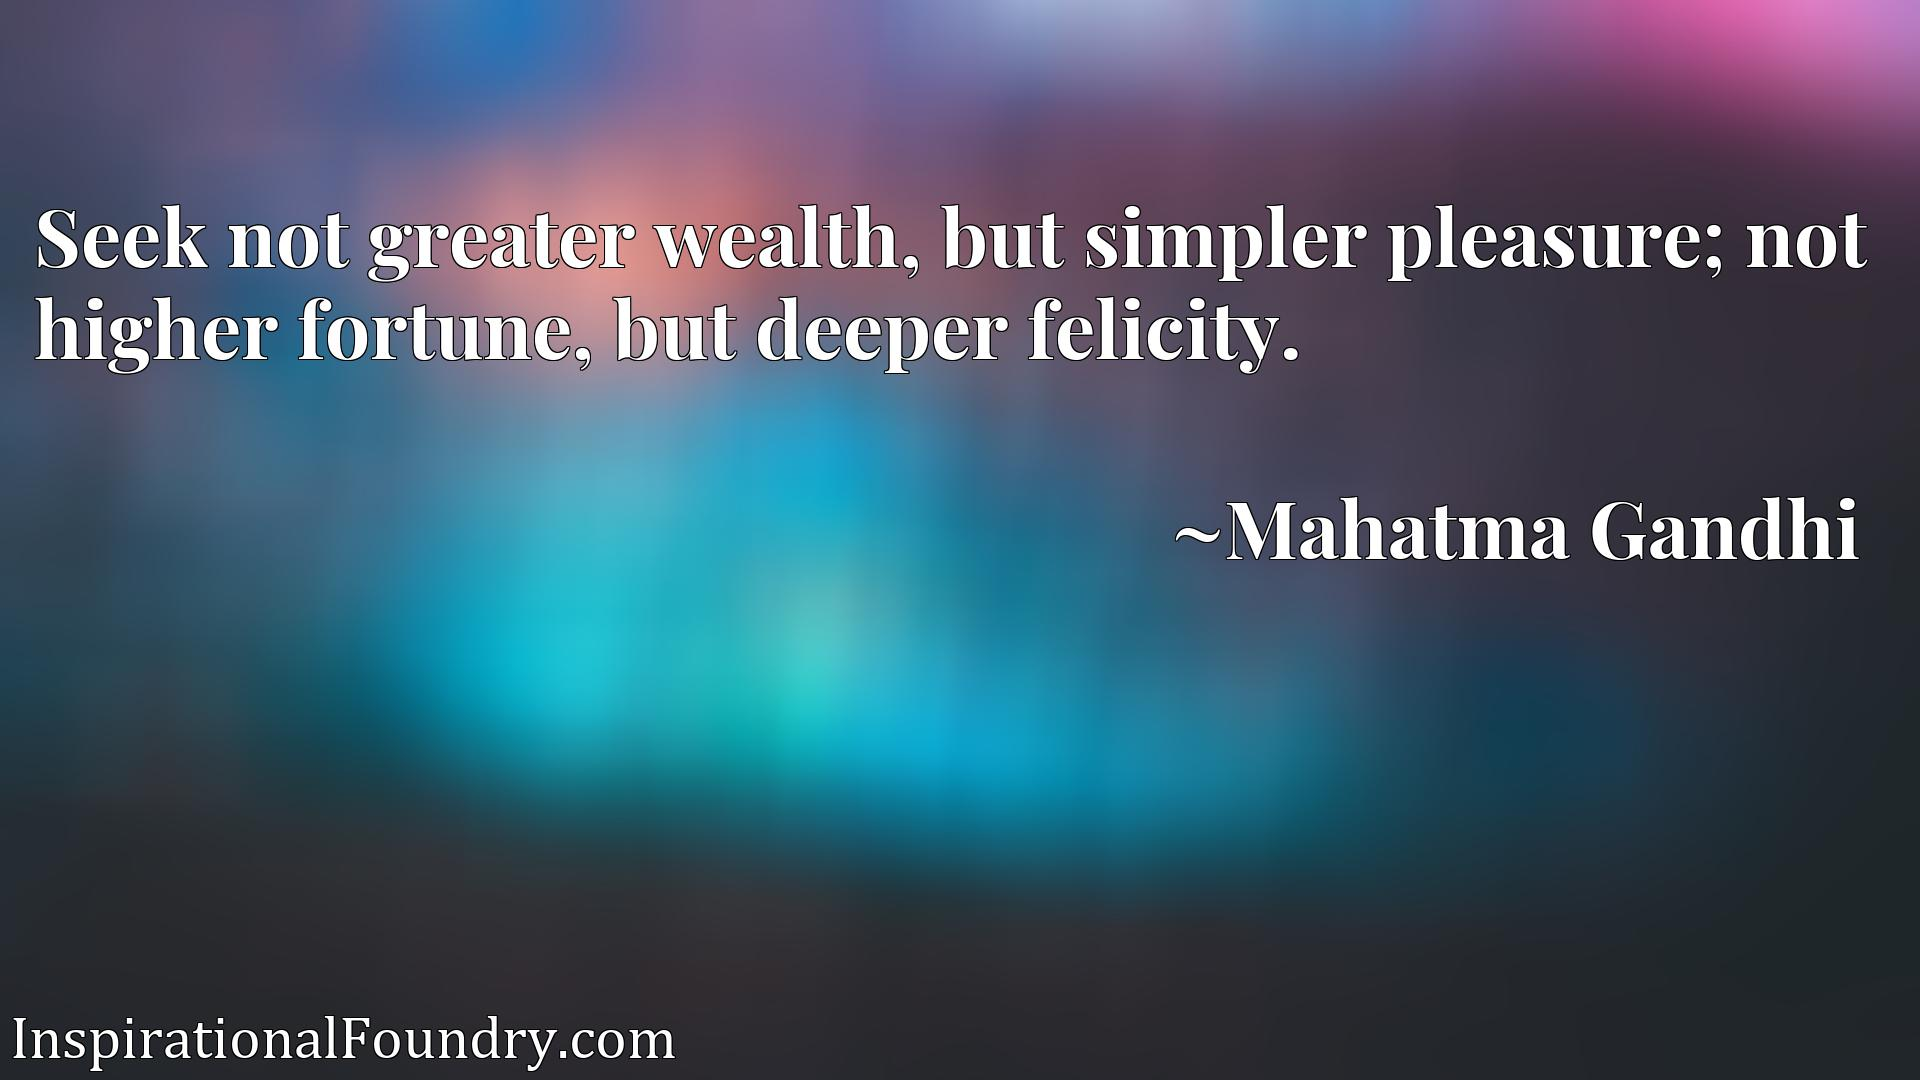 Seek not greater wealth, but simpler pleasure; not higher fortune, but deeper felicity.